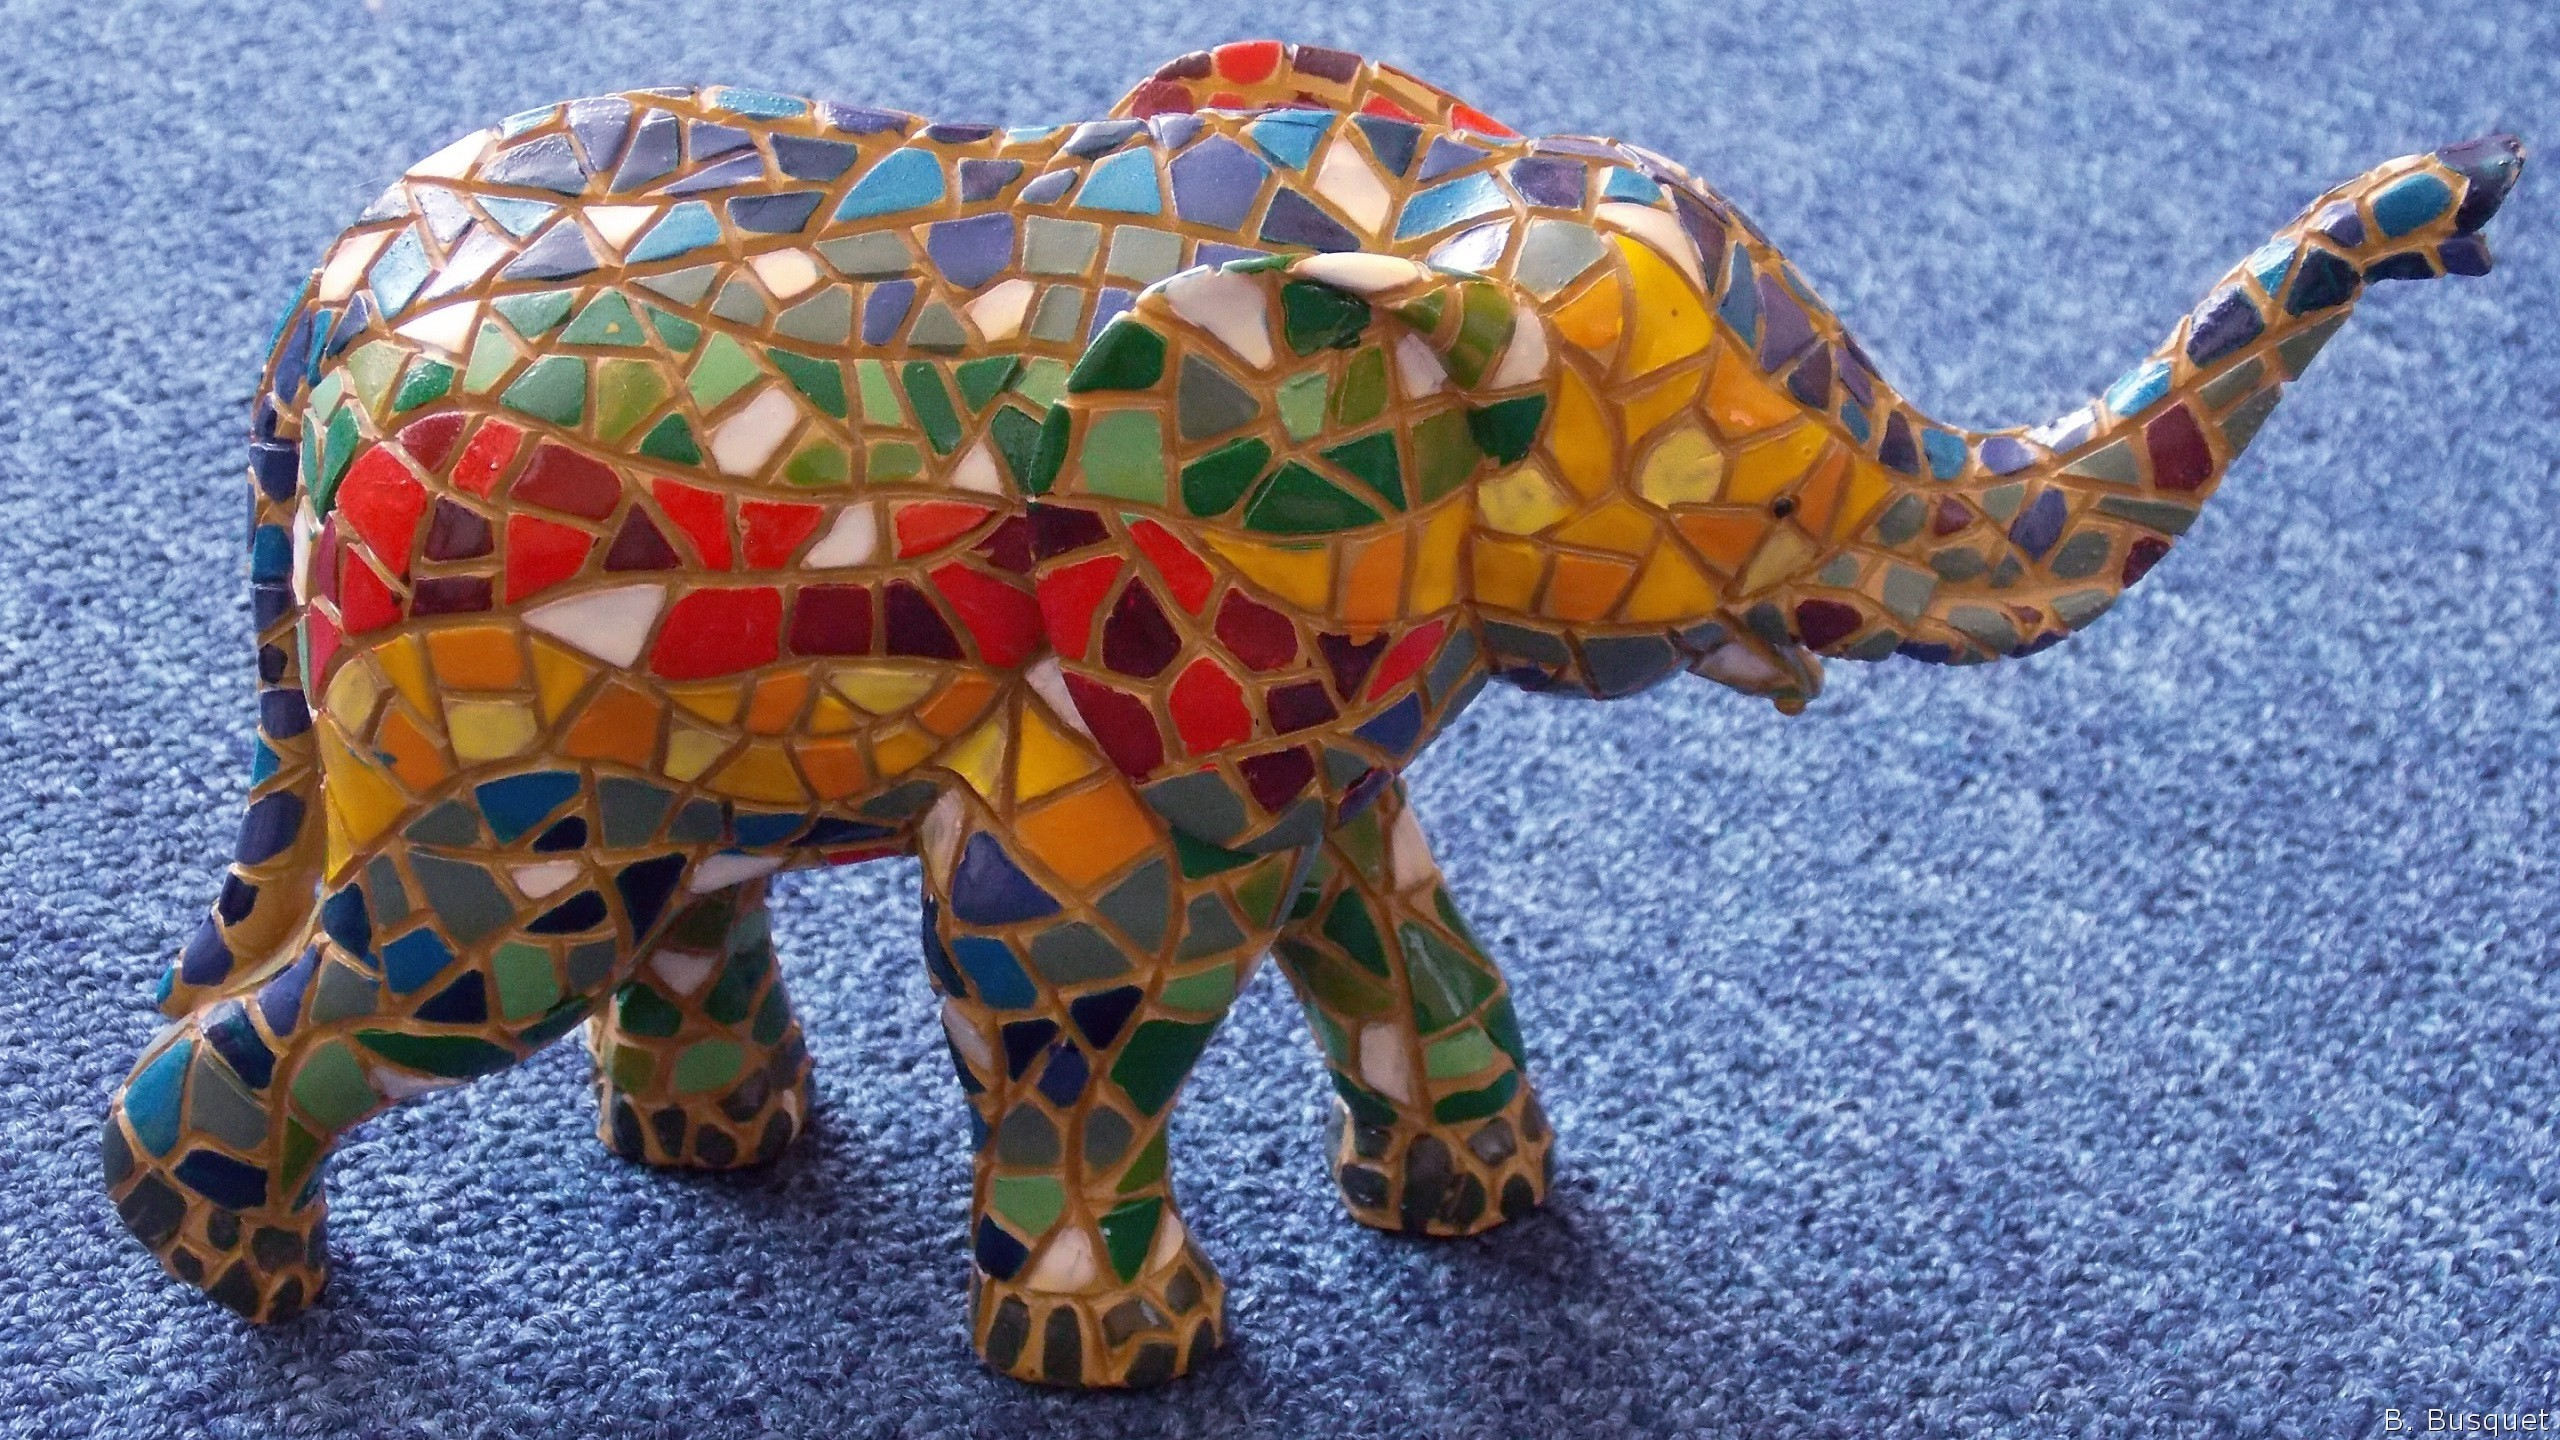 2560x1440 HD wallpaper with colorful mosaic elephant